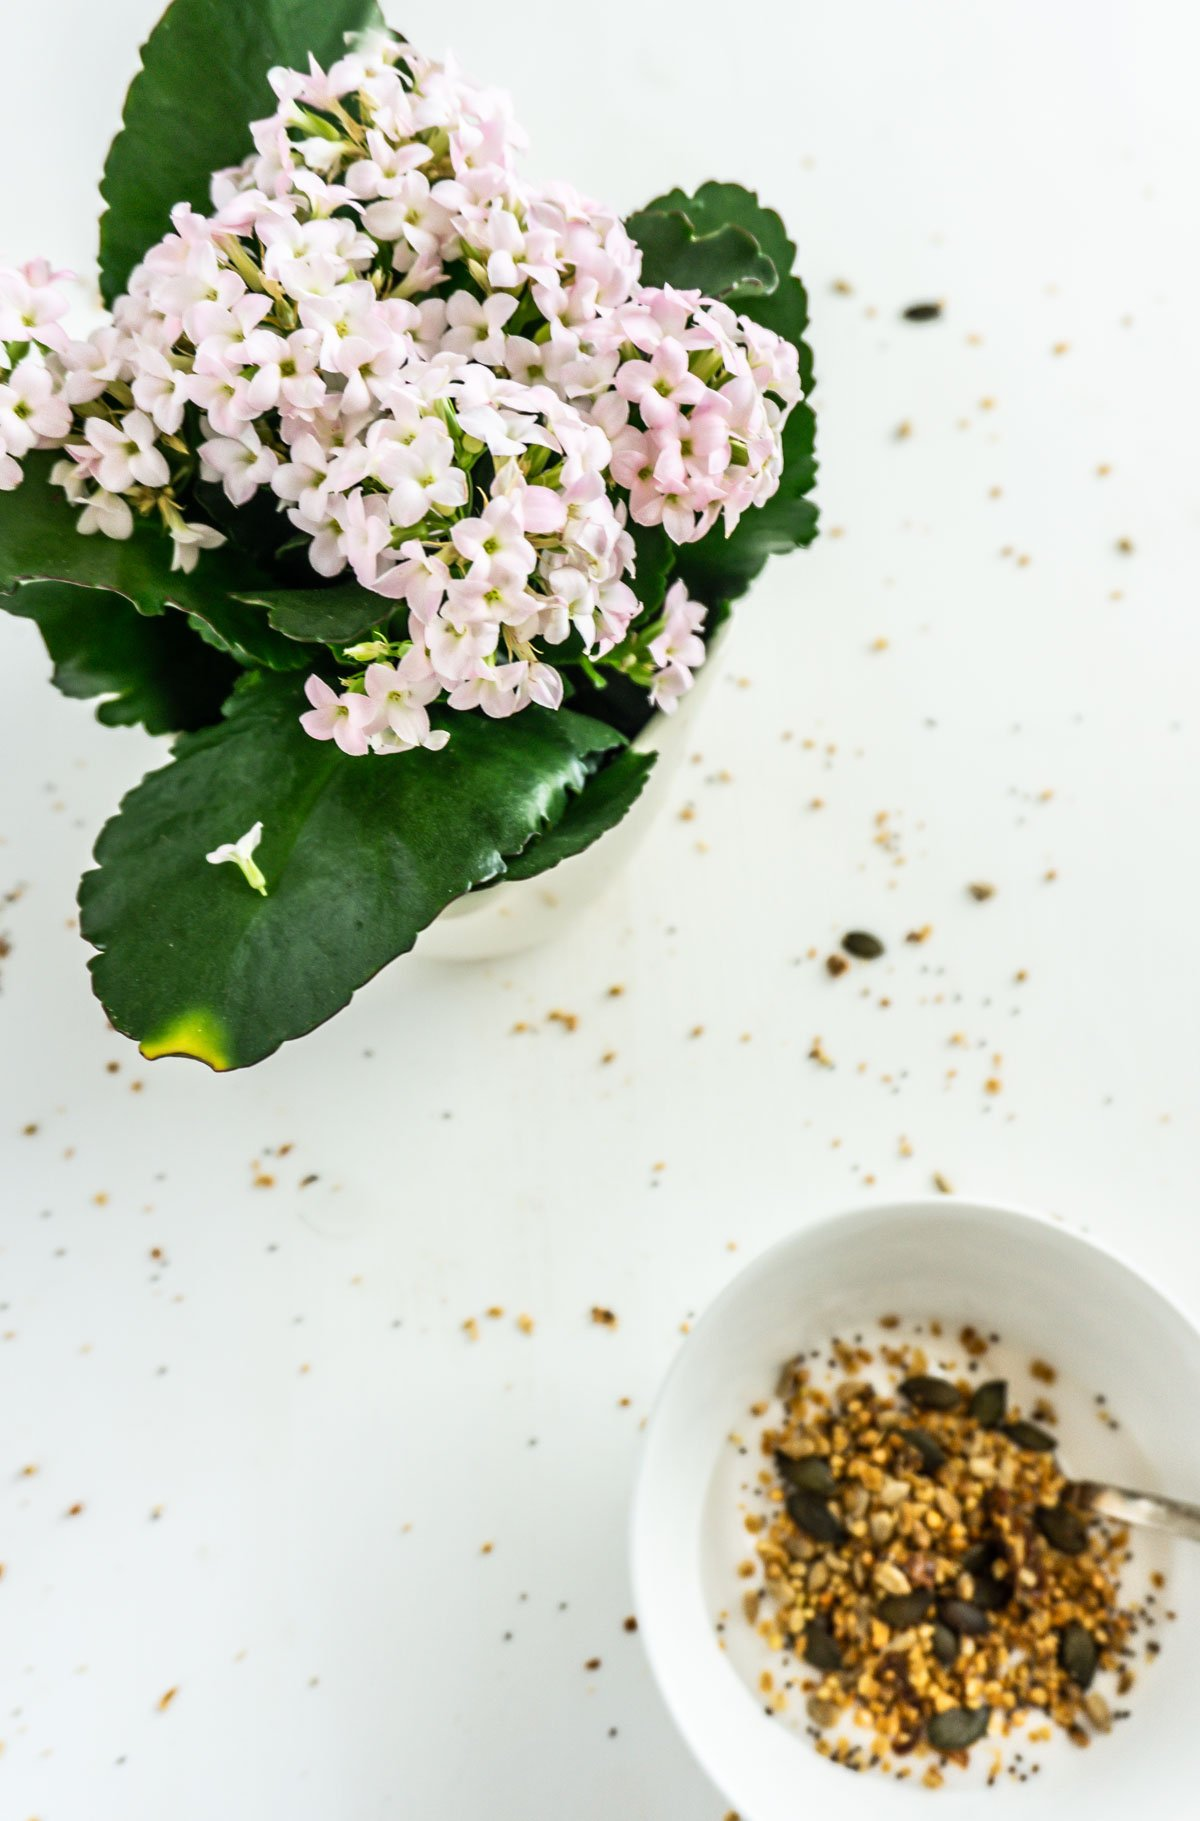 Bowl with nut-free ginger granola on yoghurt with flowers in the background